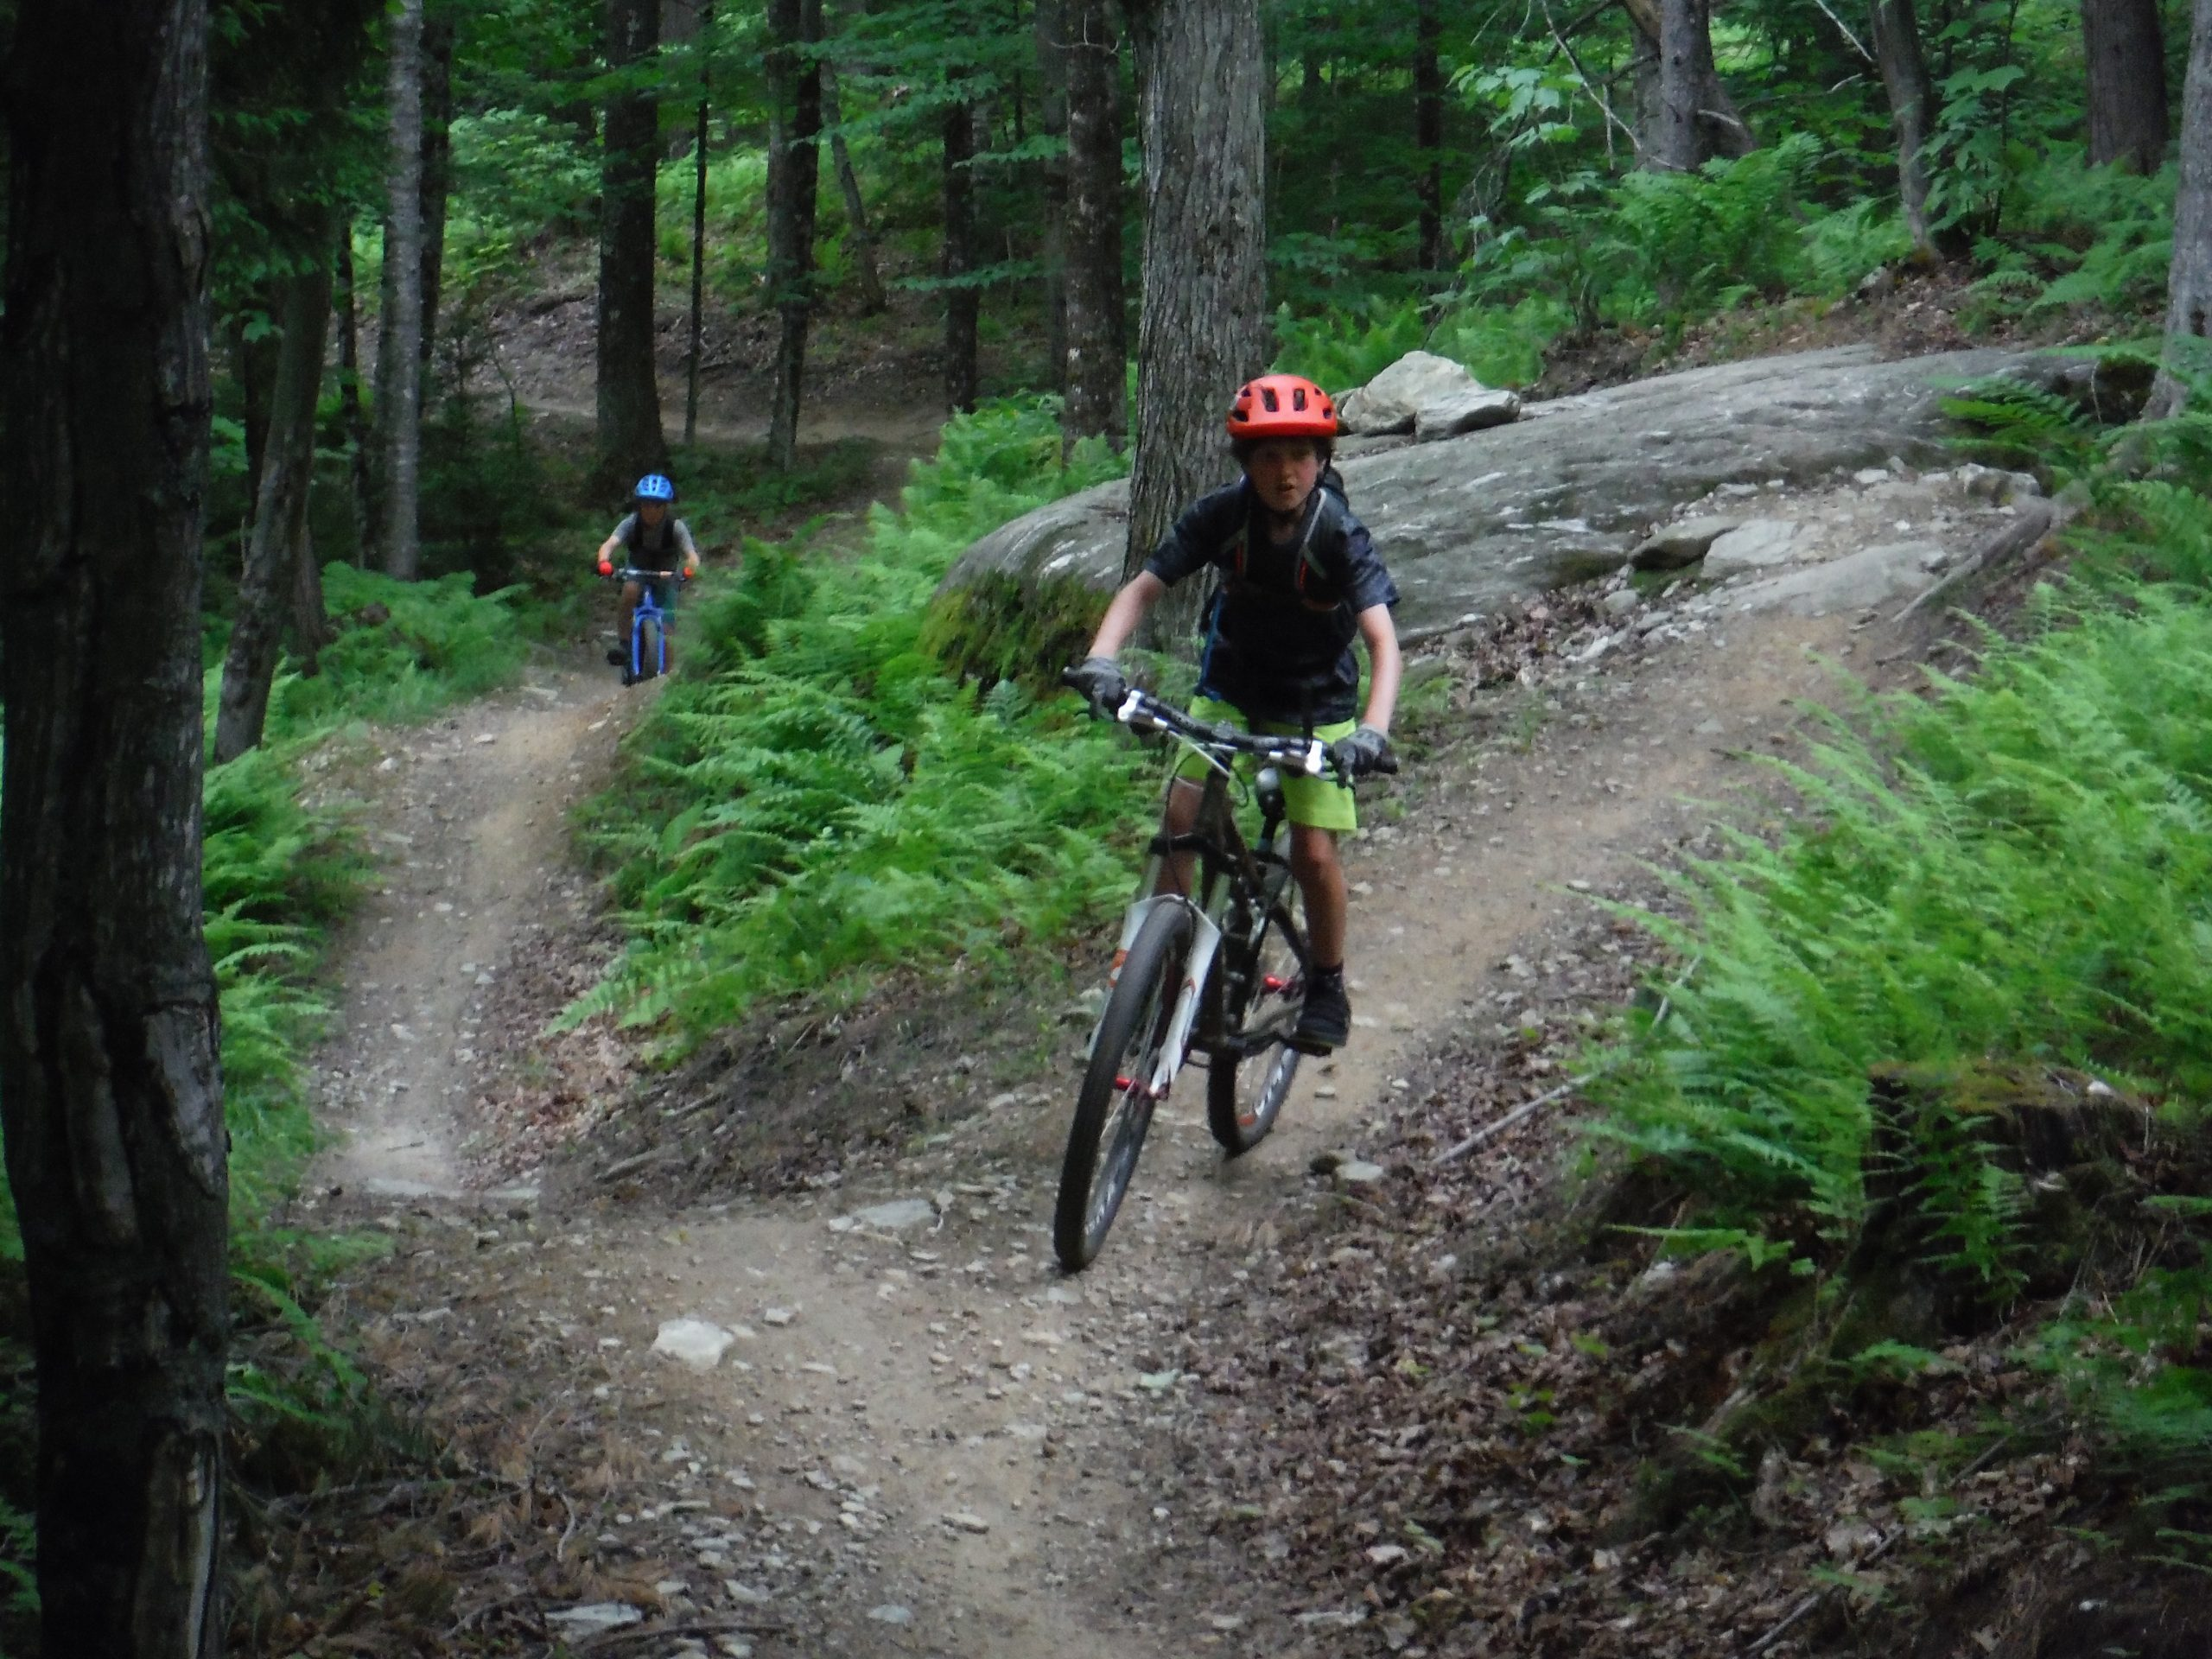 After taking a dip, we hop right back on our bikes to continue adventuring. Mud city offers all sorts of fun adventures for families and kids. Custom tours of the Stowe Vermont area too.